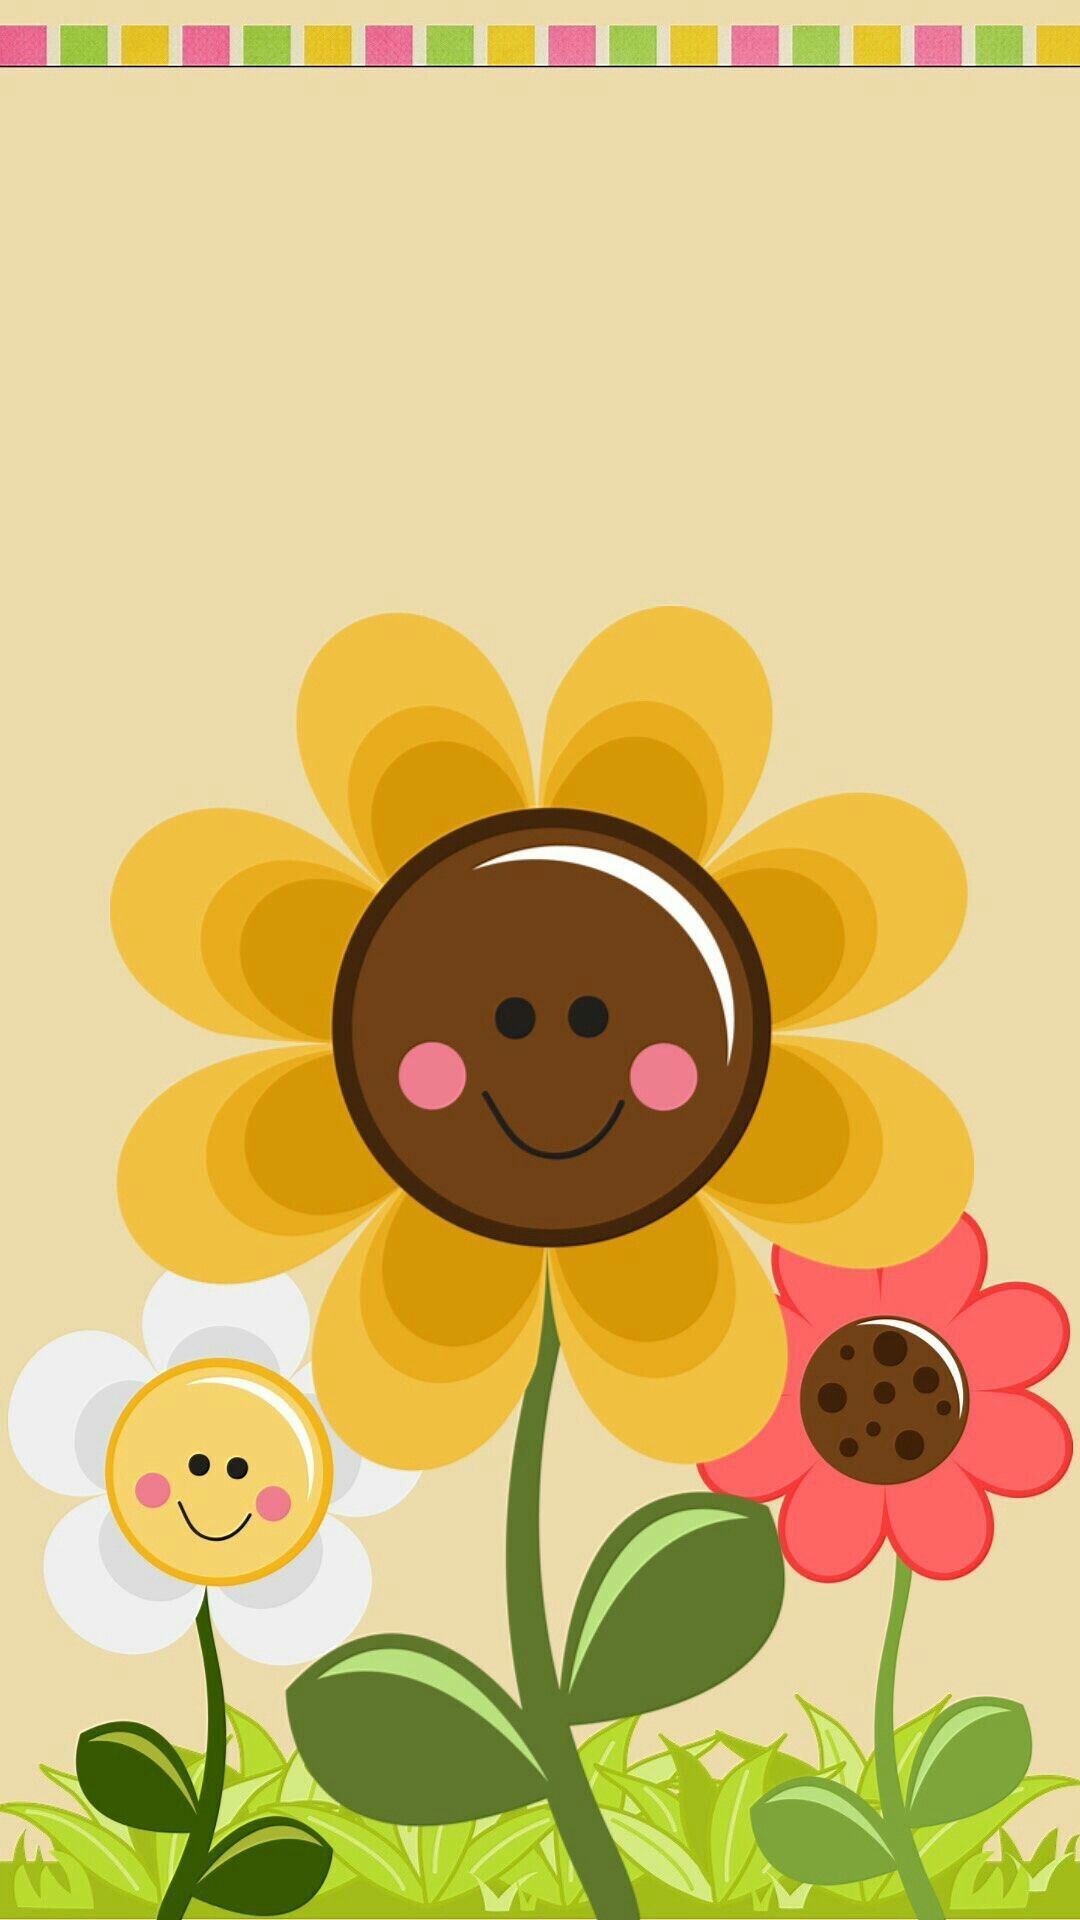 1080x1920 Smiley Sunflowers Wallpaper | *Cartoon, Animated and People ...